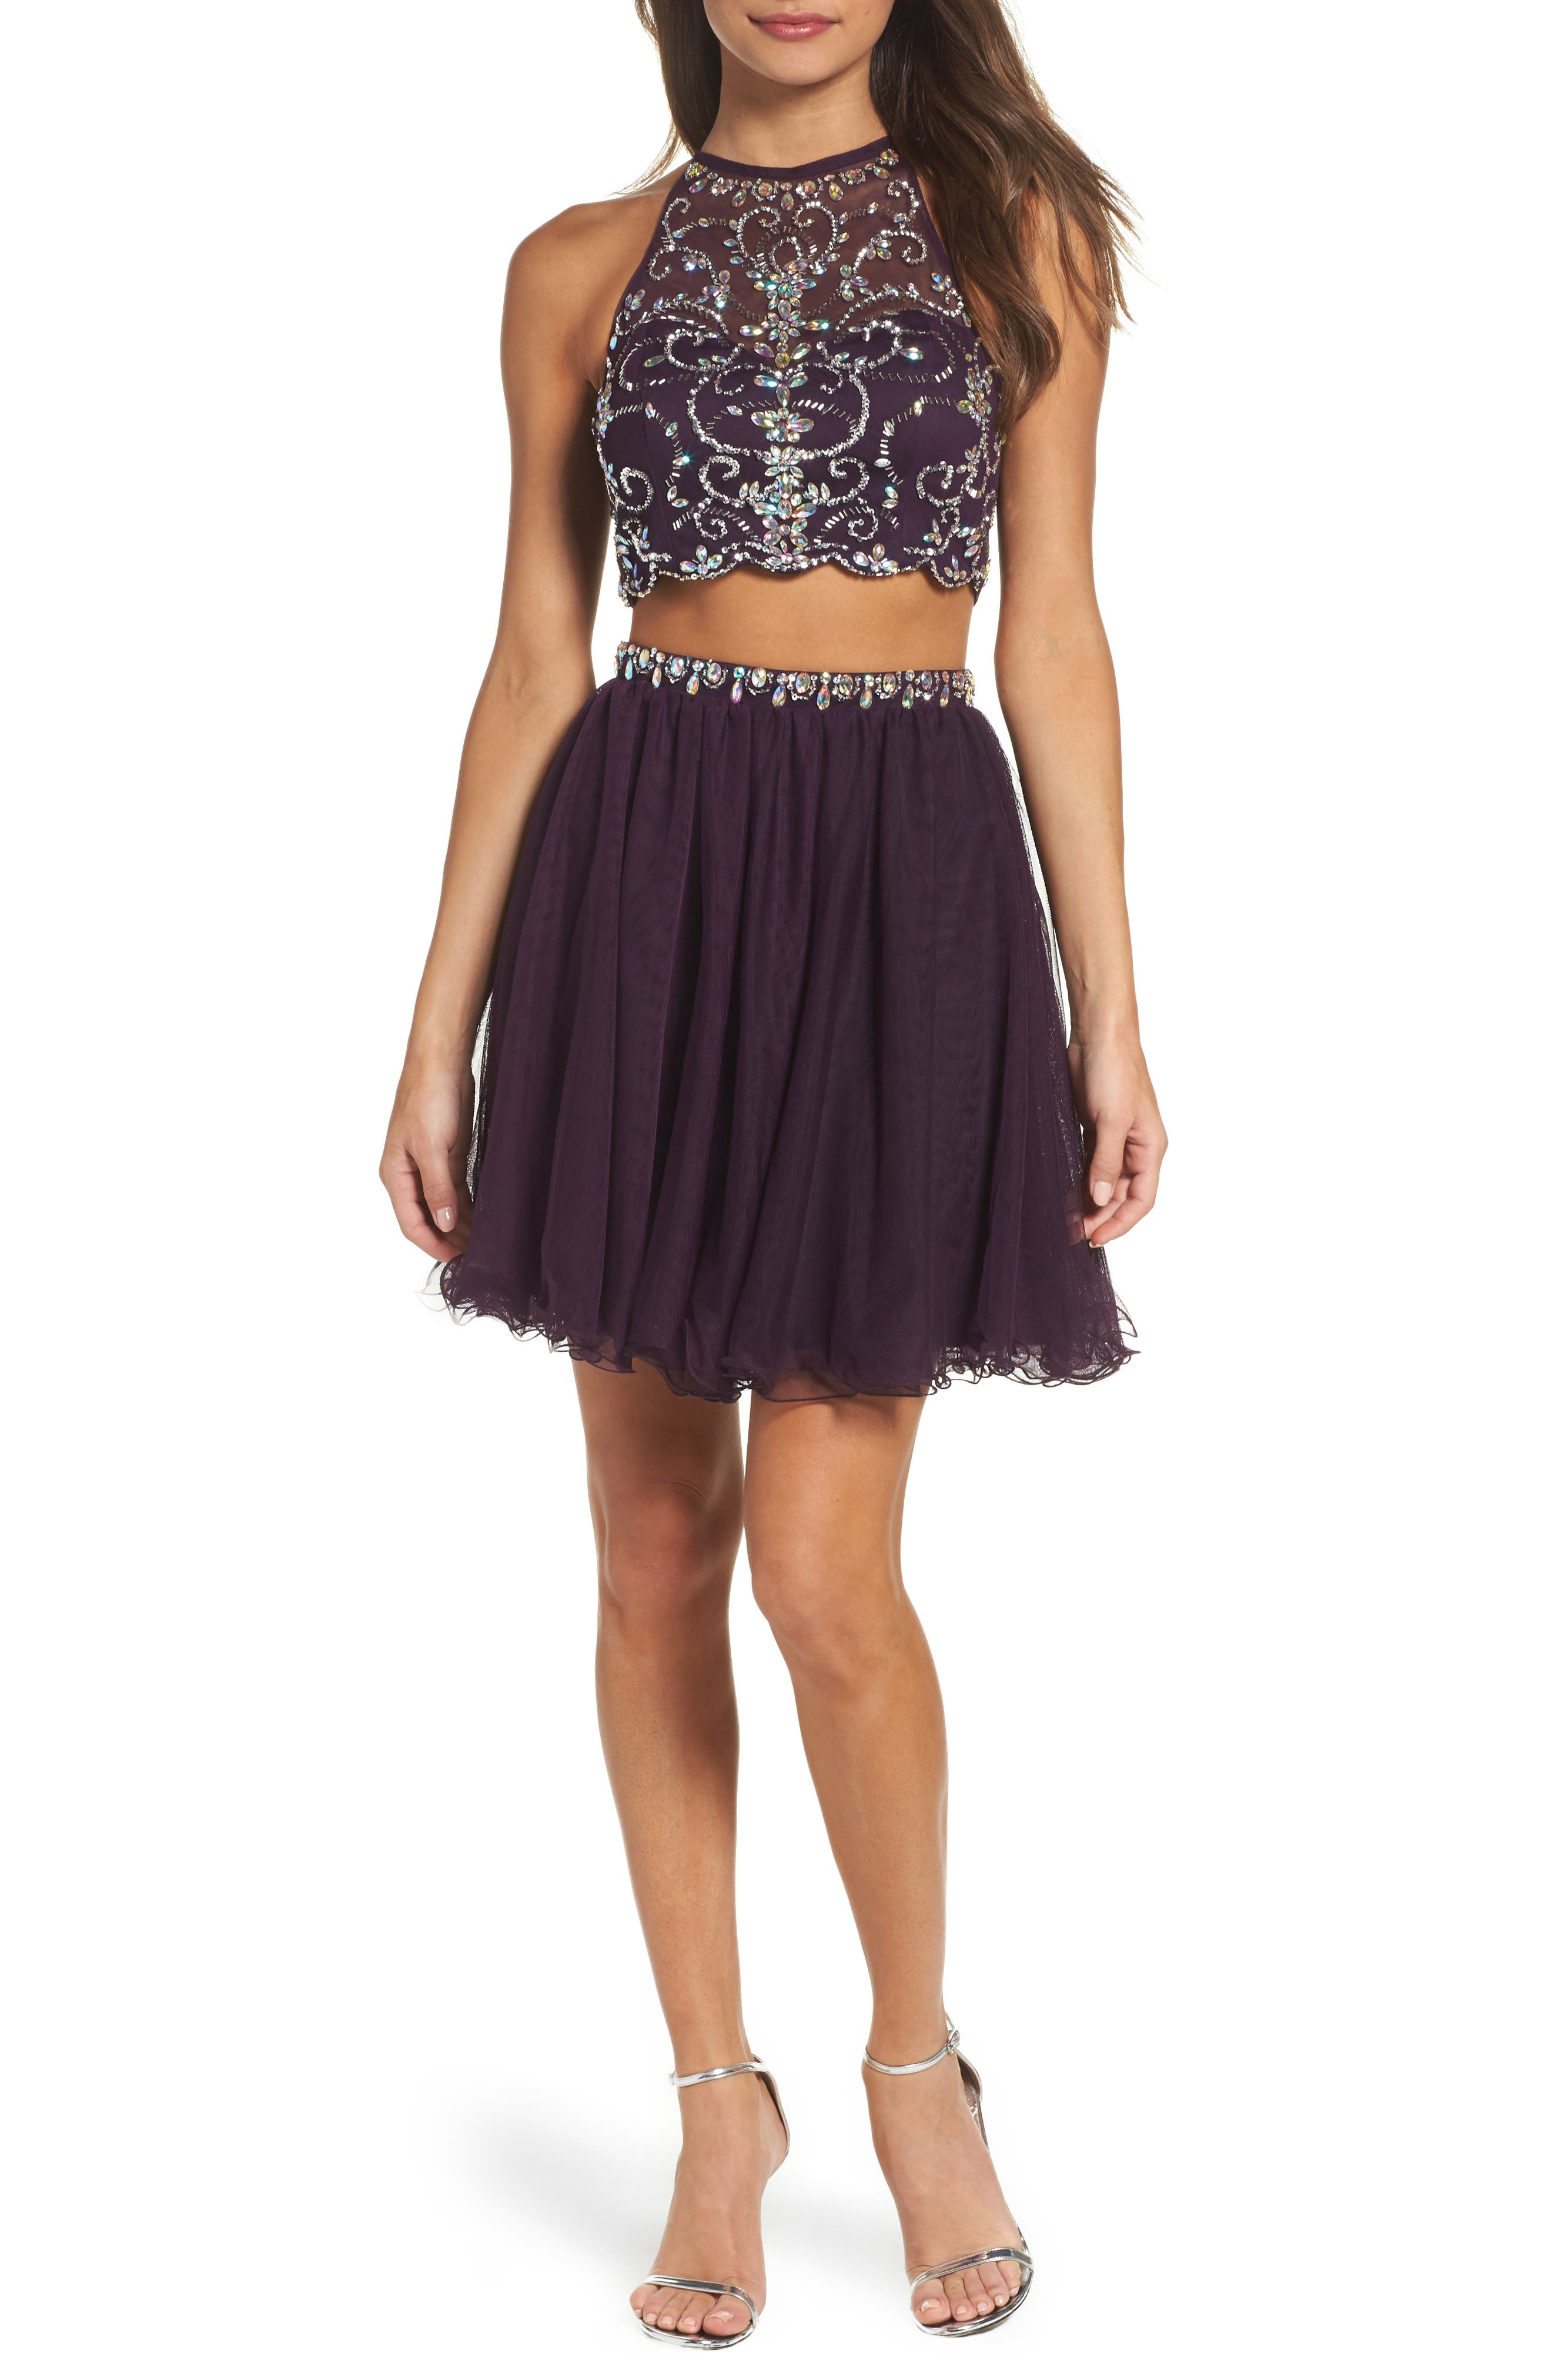 Alternate Image 1 Selected - Blondie Nites Embellished Two-Piece Fit & Flare Dress